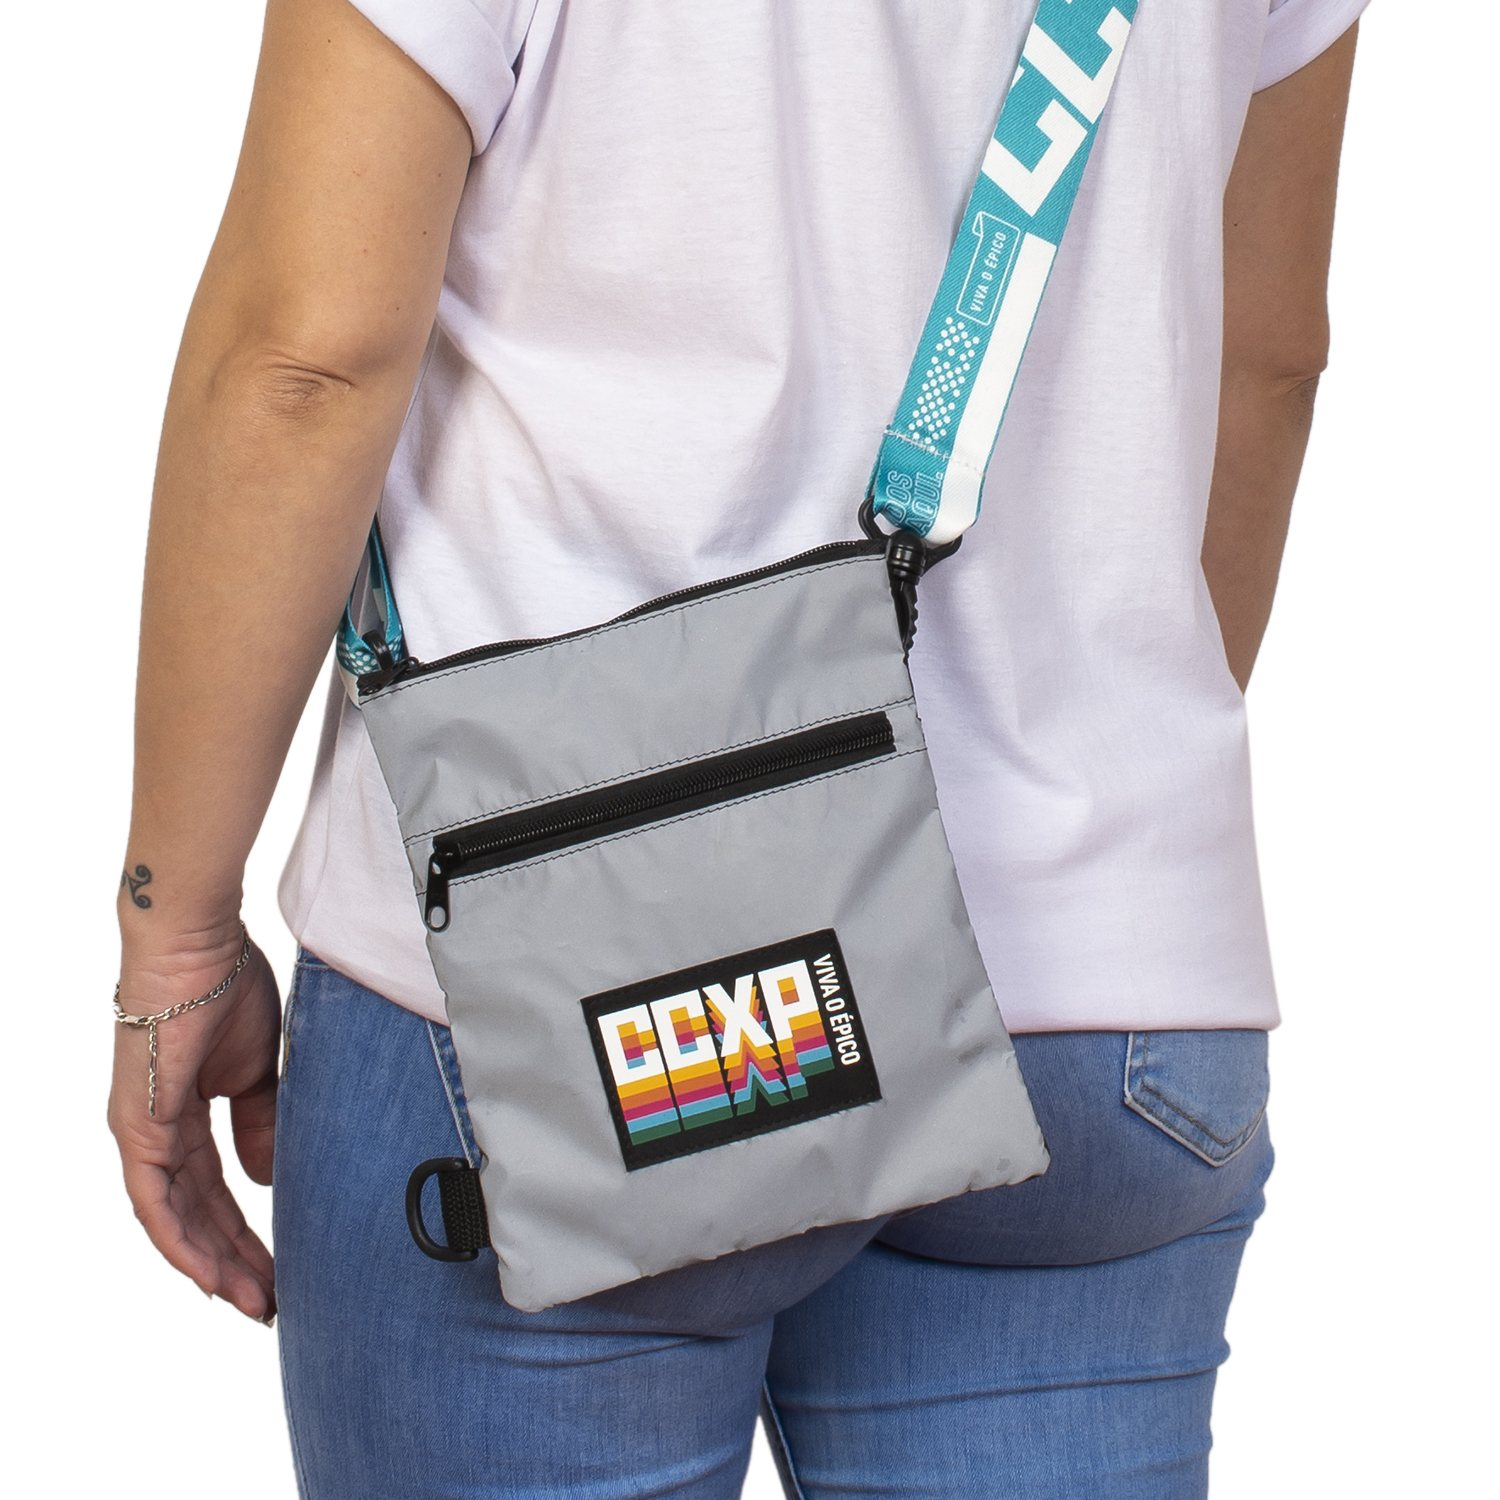 Shoulder Bag CCXP